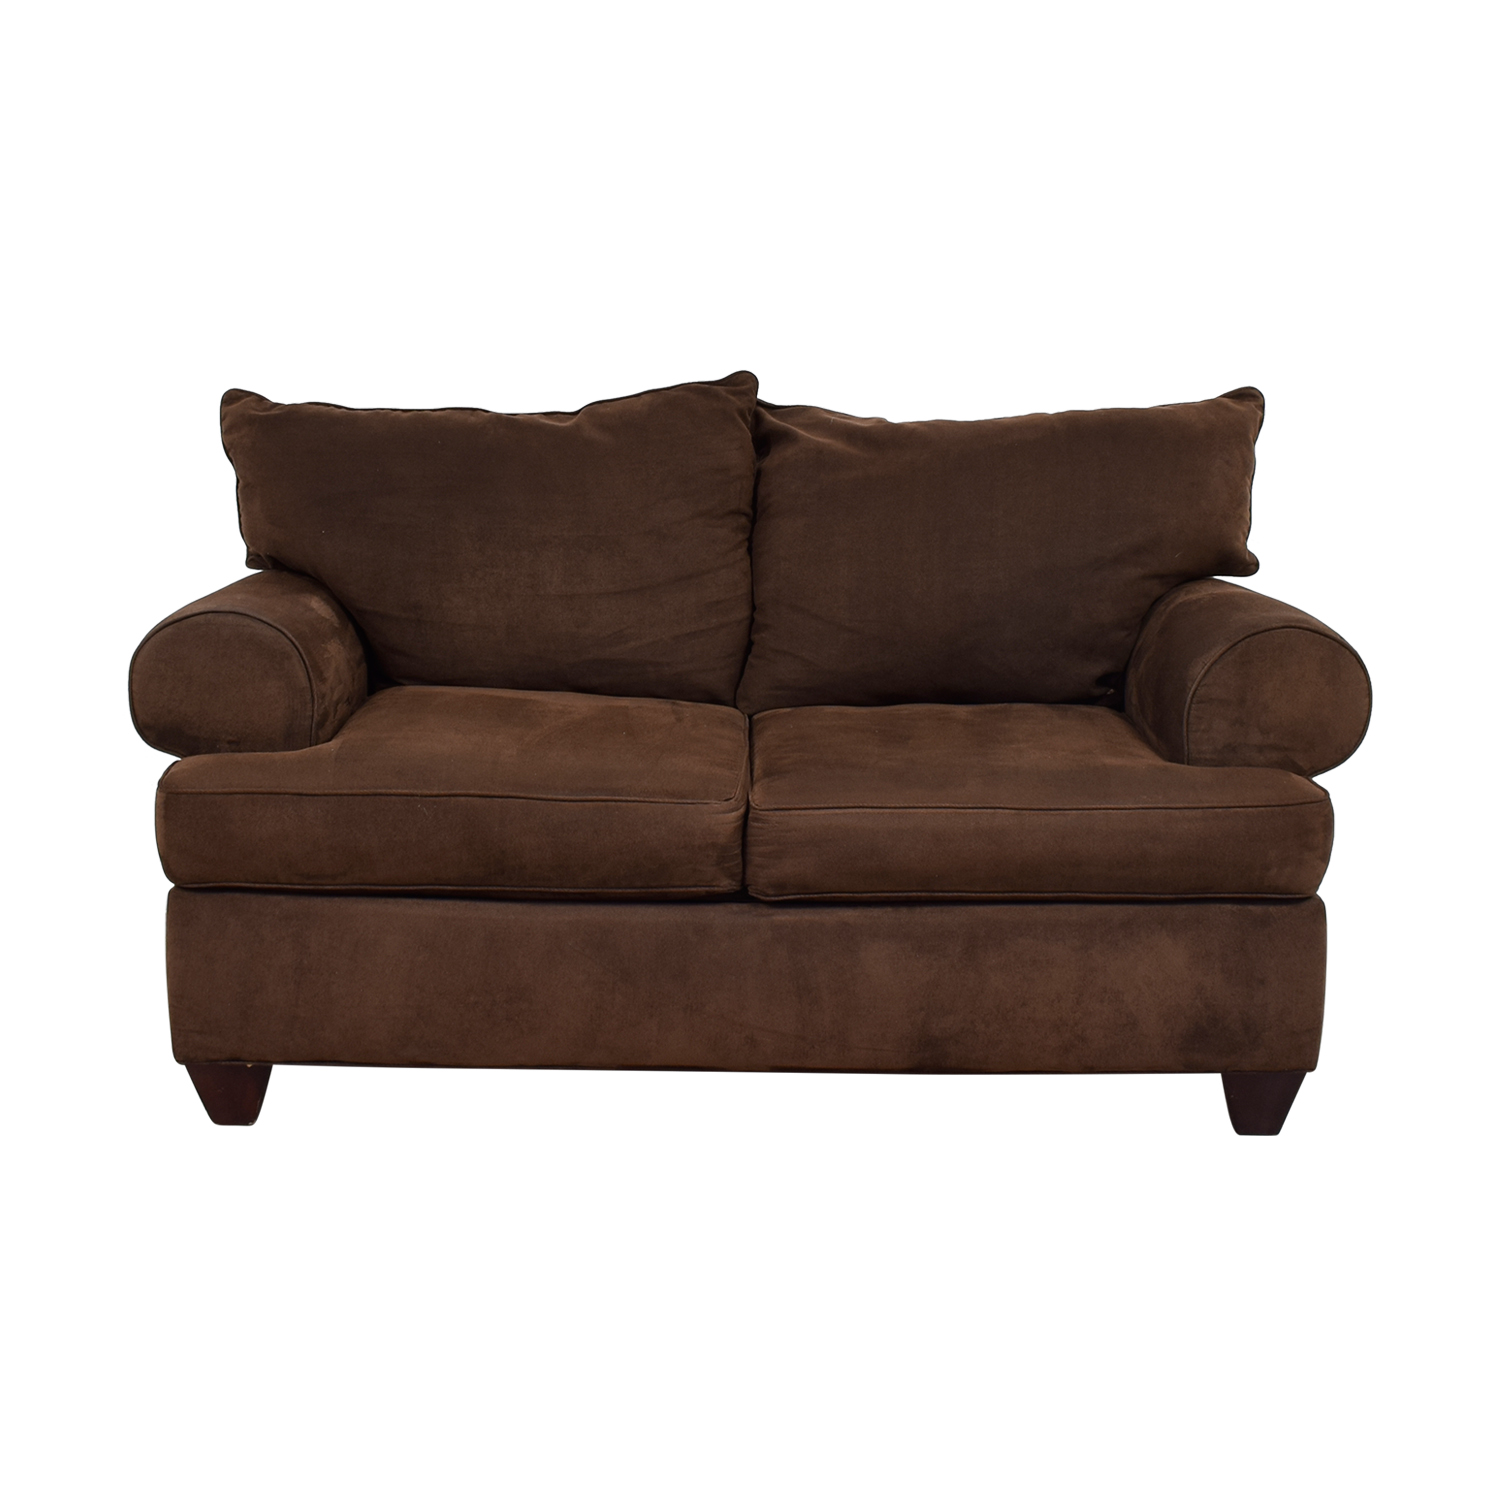 Raymour & Flanigan Brown Two-Cushion Loveseat / Loveseats